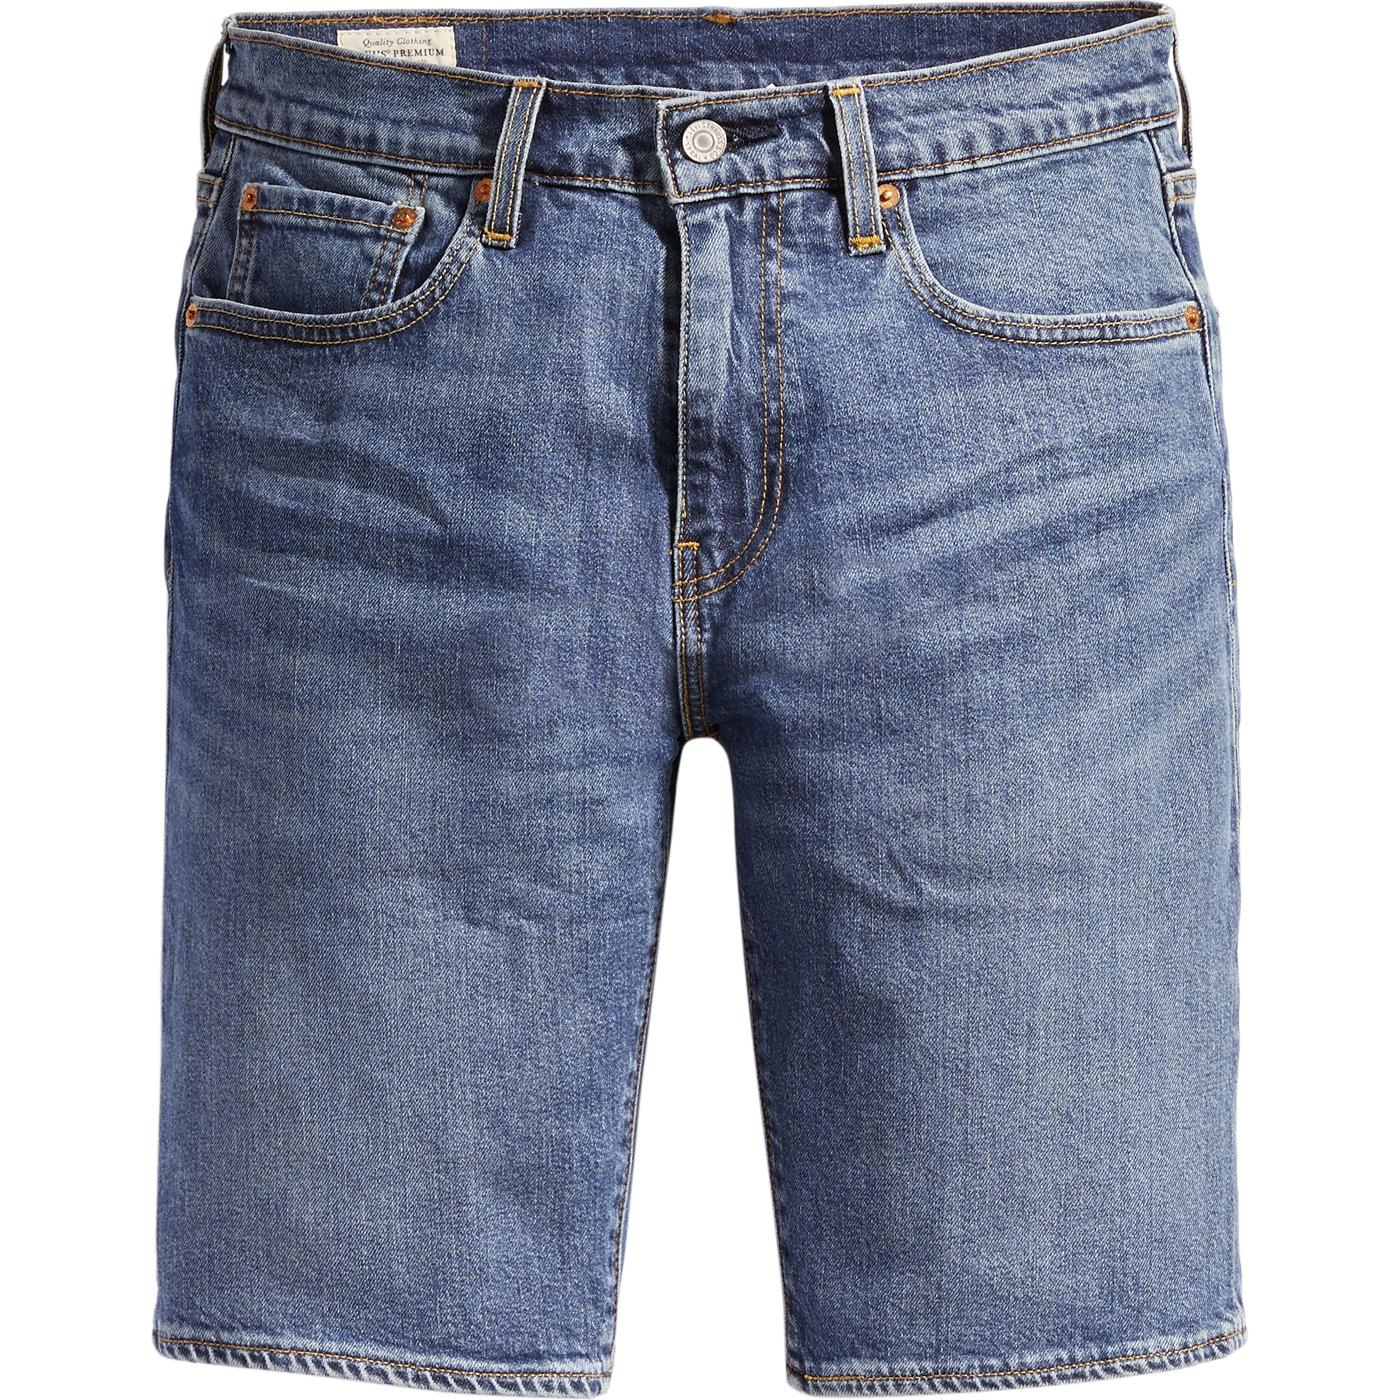 LEVI'S 502 Taper Denim Hemmed Shorts (MT Home Adv)